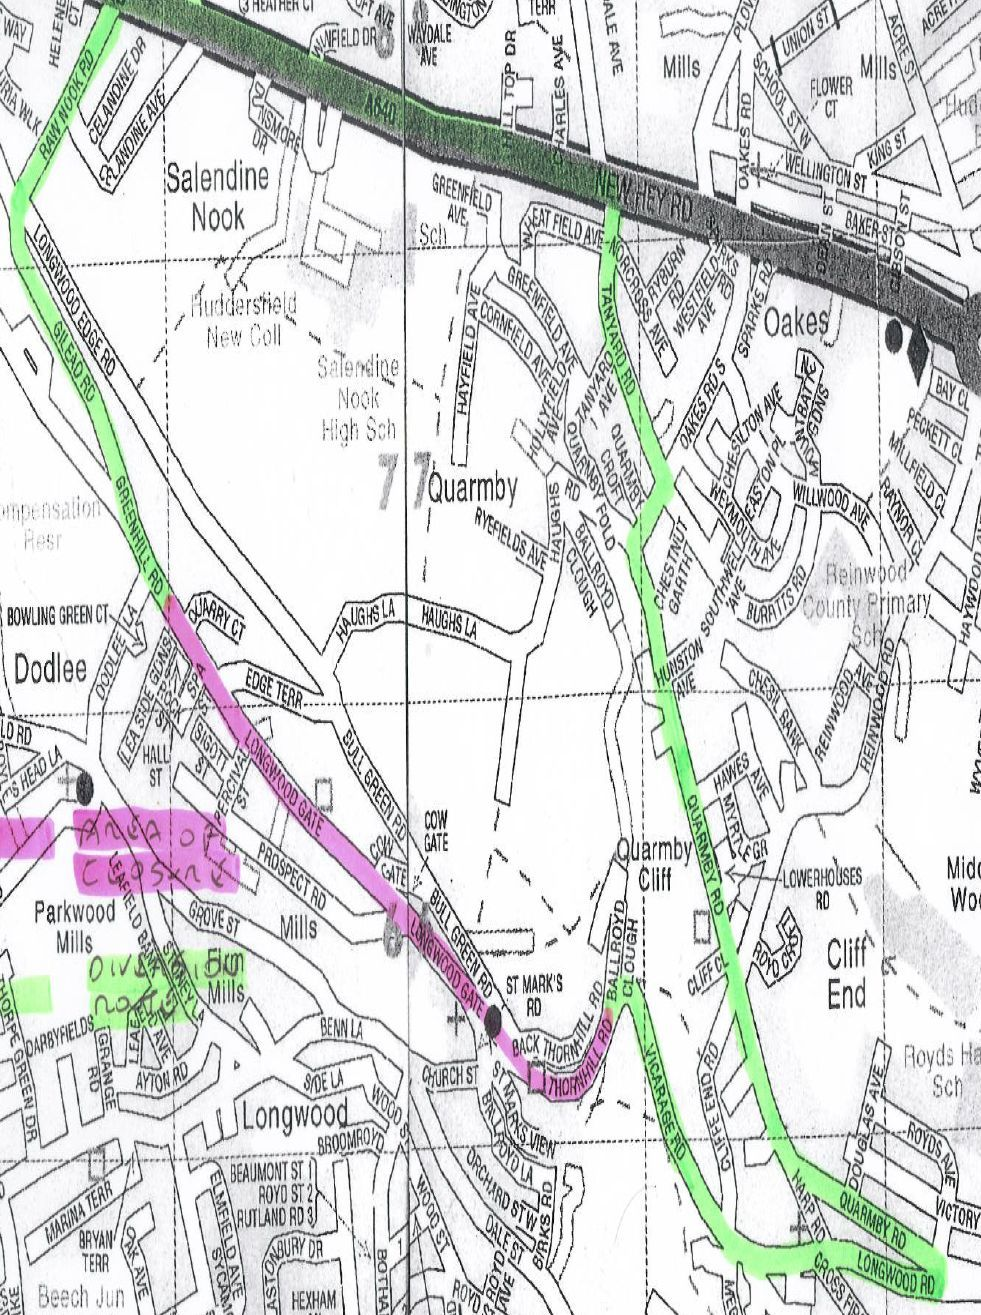 Closure of longwood gate and thornhill road